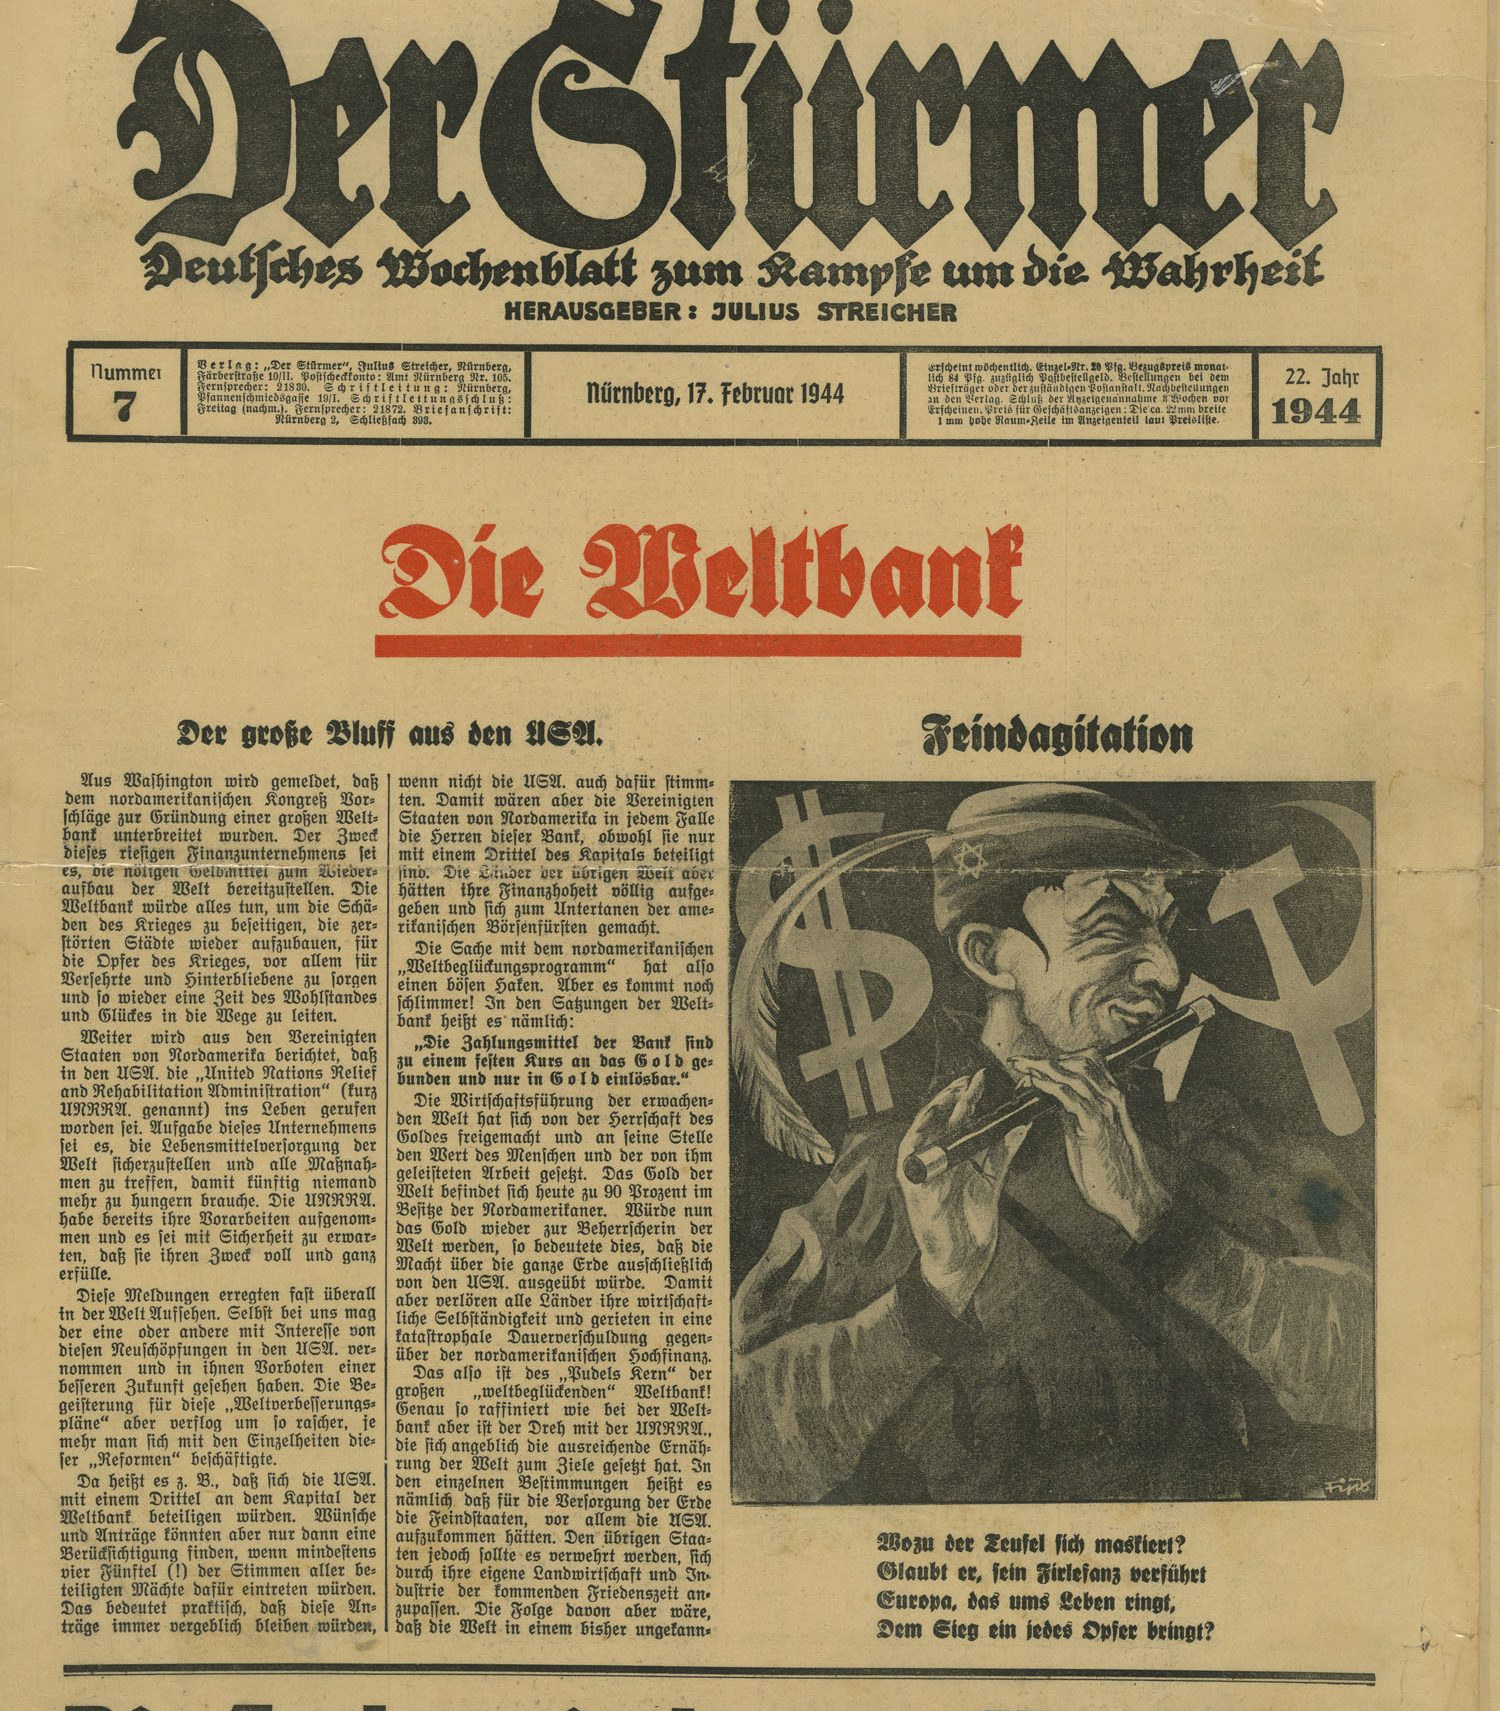 """The Der Stürmer newspaper was an antisemitic publication distributed in Germany between 1923 and 1945. This edition from February 17, 1944, entitled """"The World Bank"""" falsely accuses North American Jews of controlling this institution."""